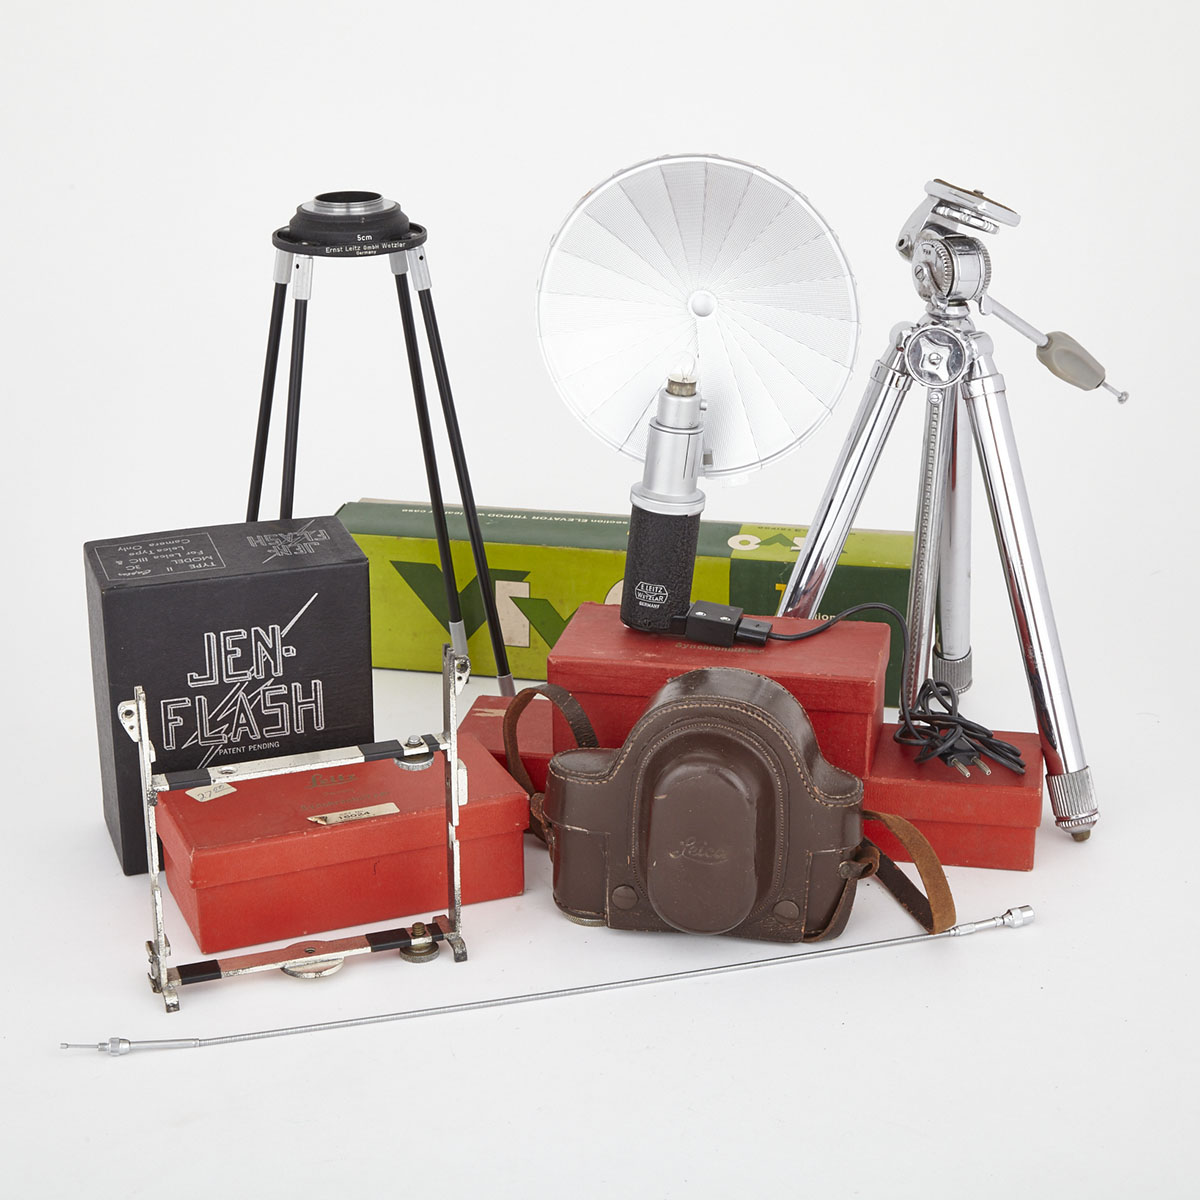 Group of Leica Camera Accessories, mid 20th century